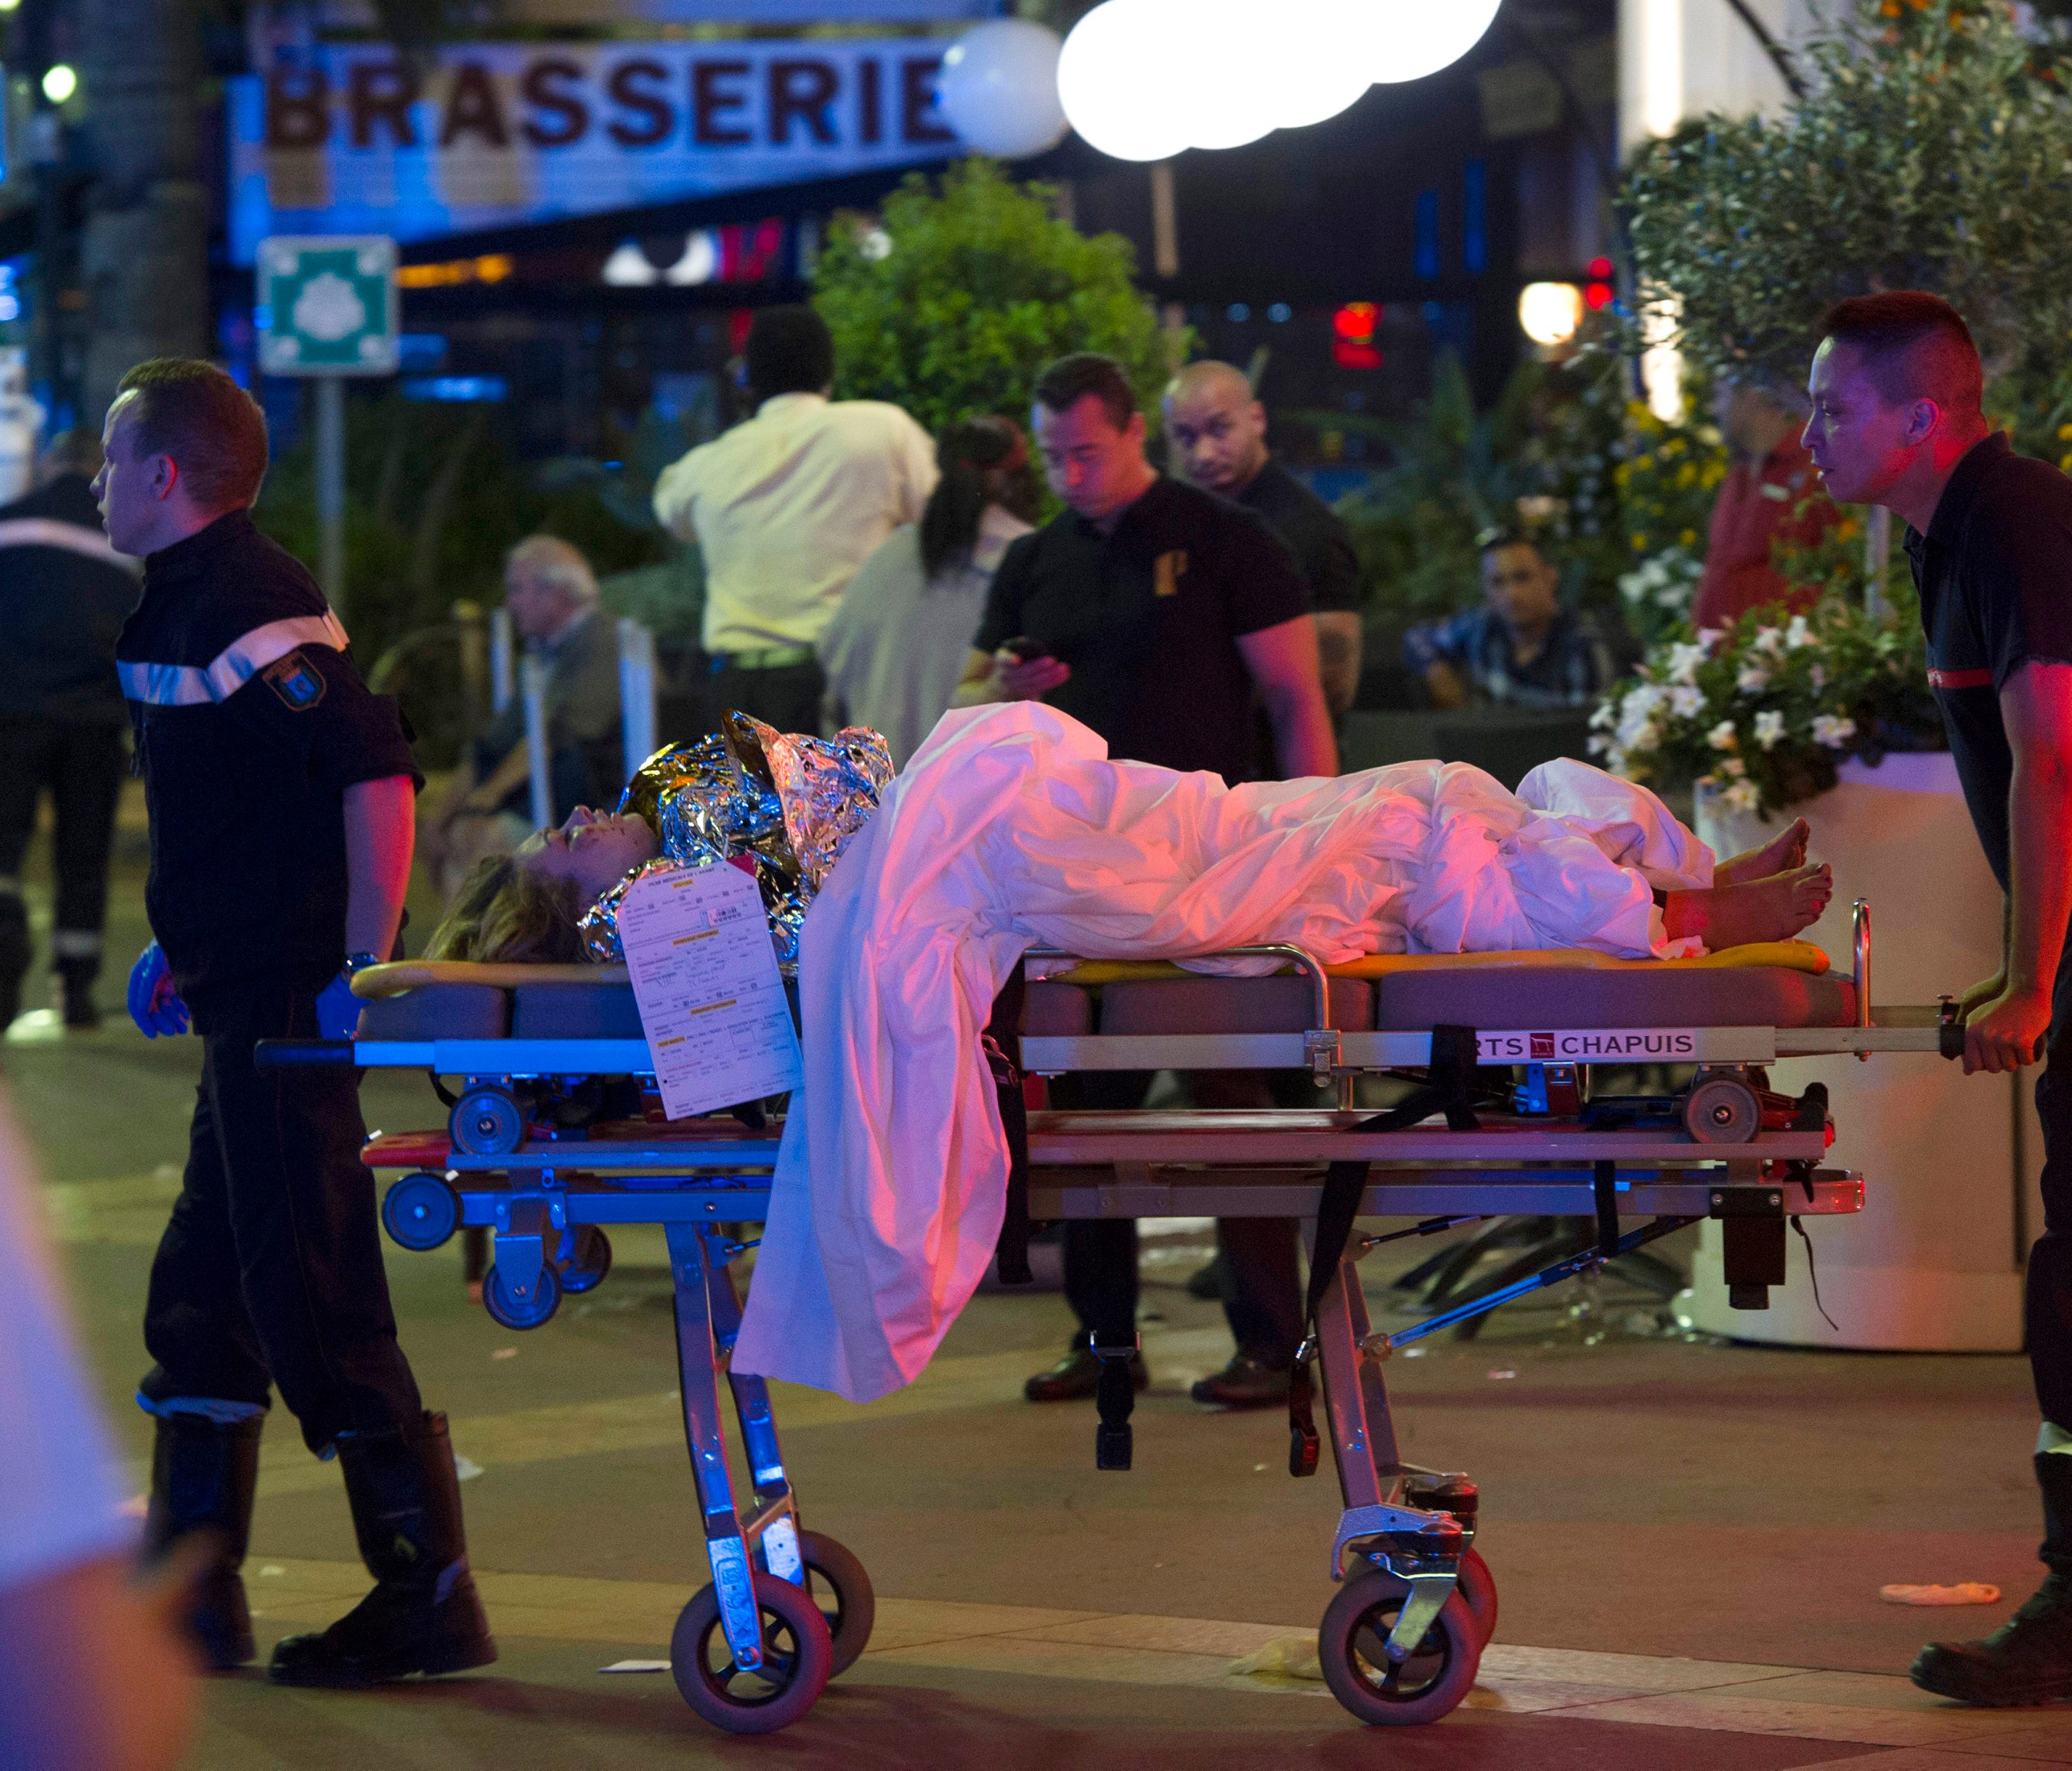 Details About Nice Attack Suspect Emerge